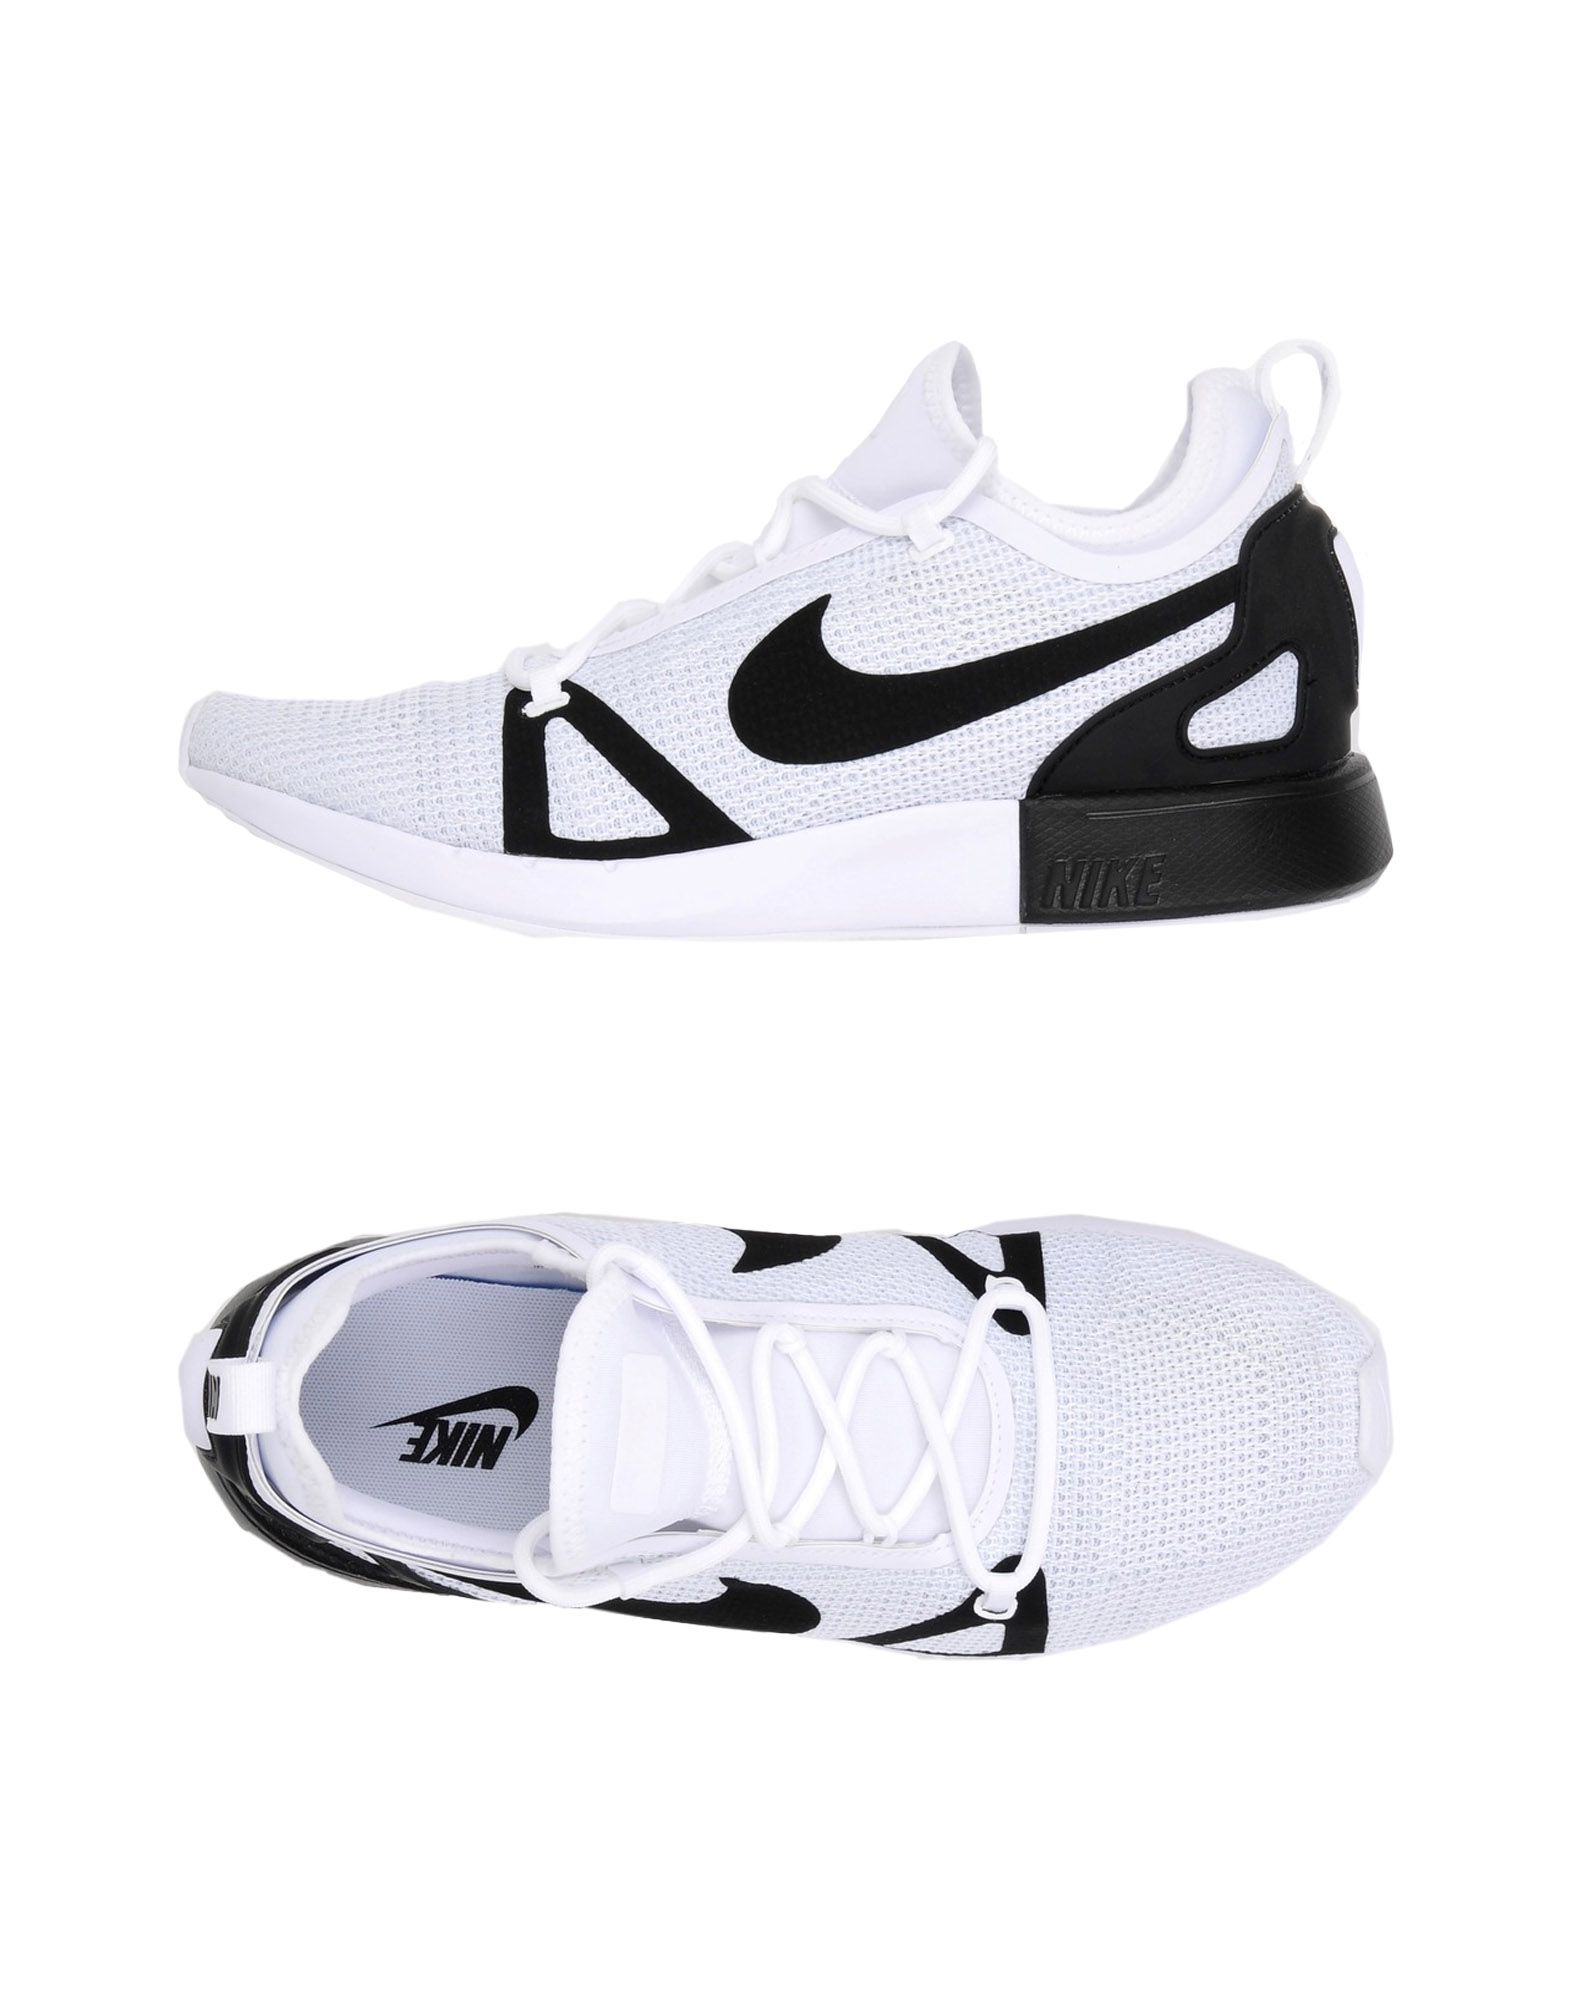 Nike  Duel Racer - Sneakers - Men Nike United Sneakers online on  United Nike Kingdom - 11374044IC 2b31cc